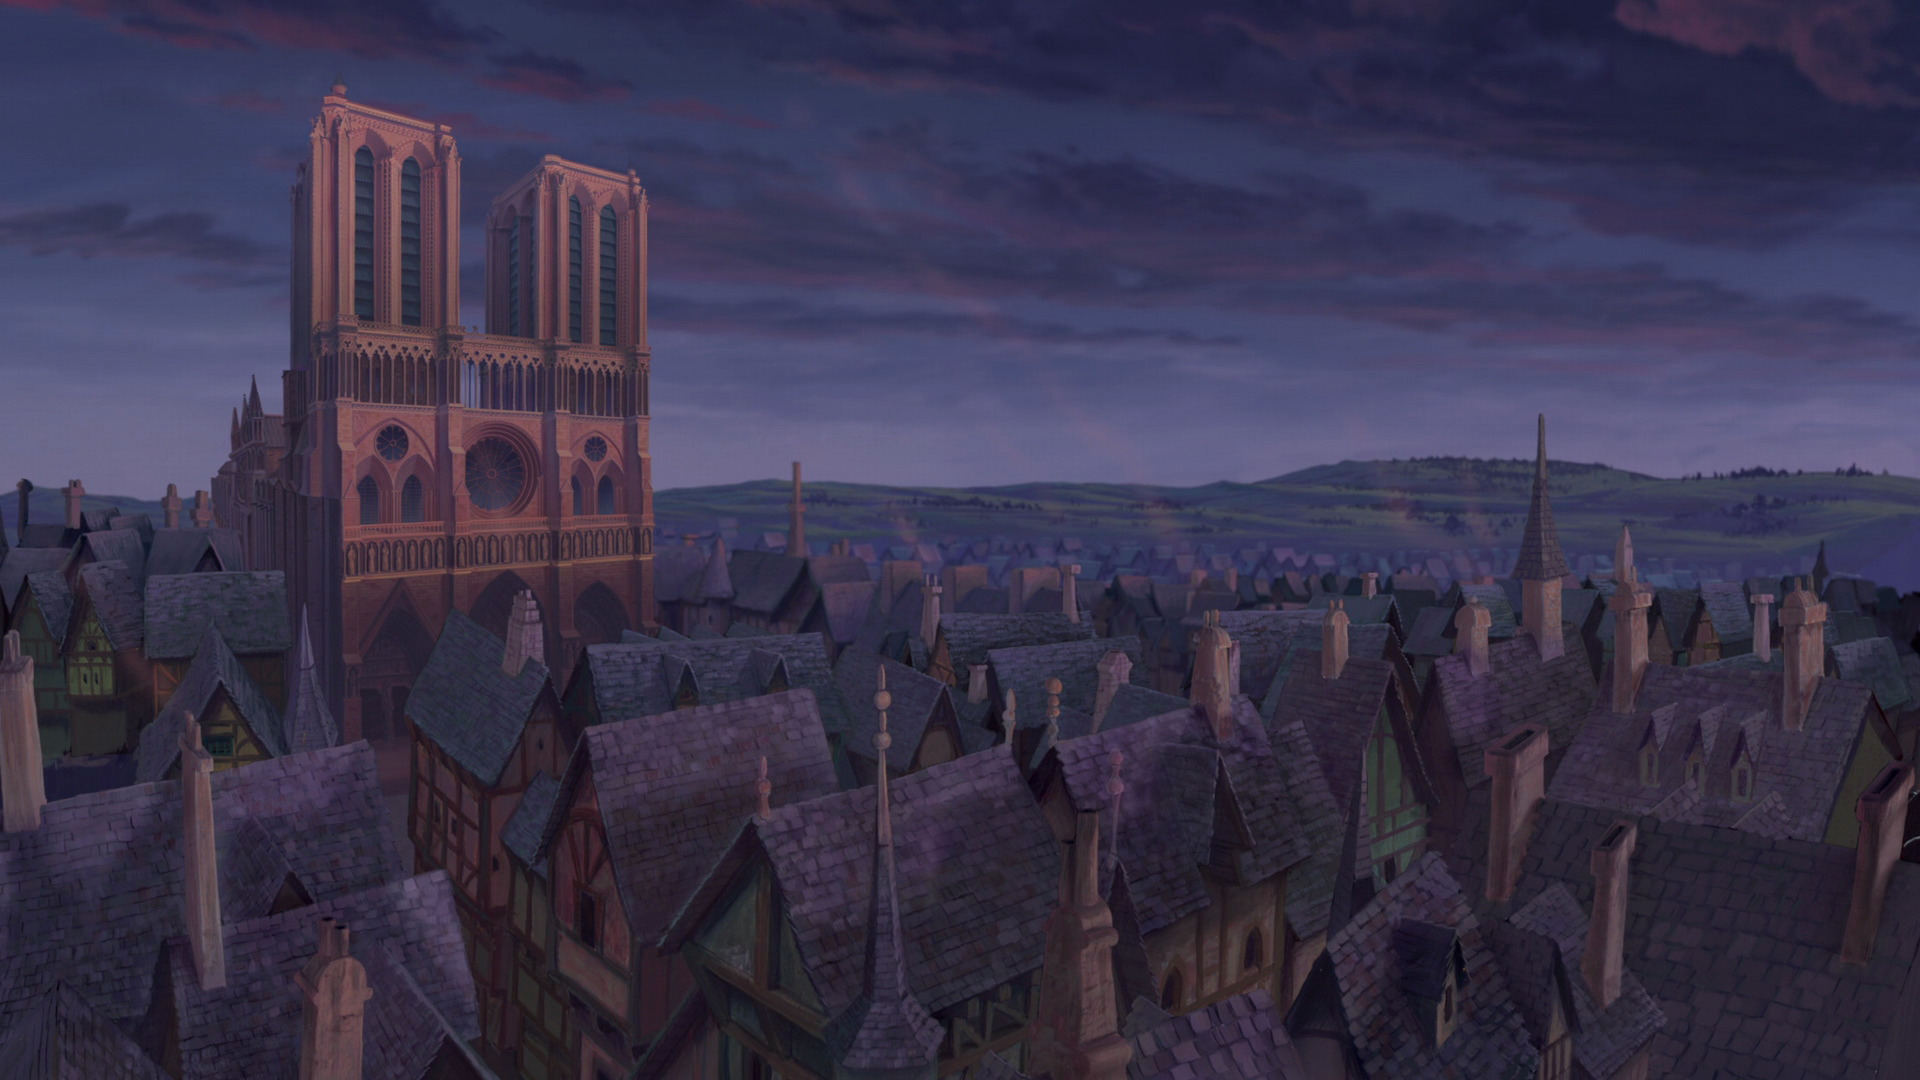 Notre dame de paris disney wiki fandom powered by wikia